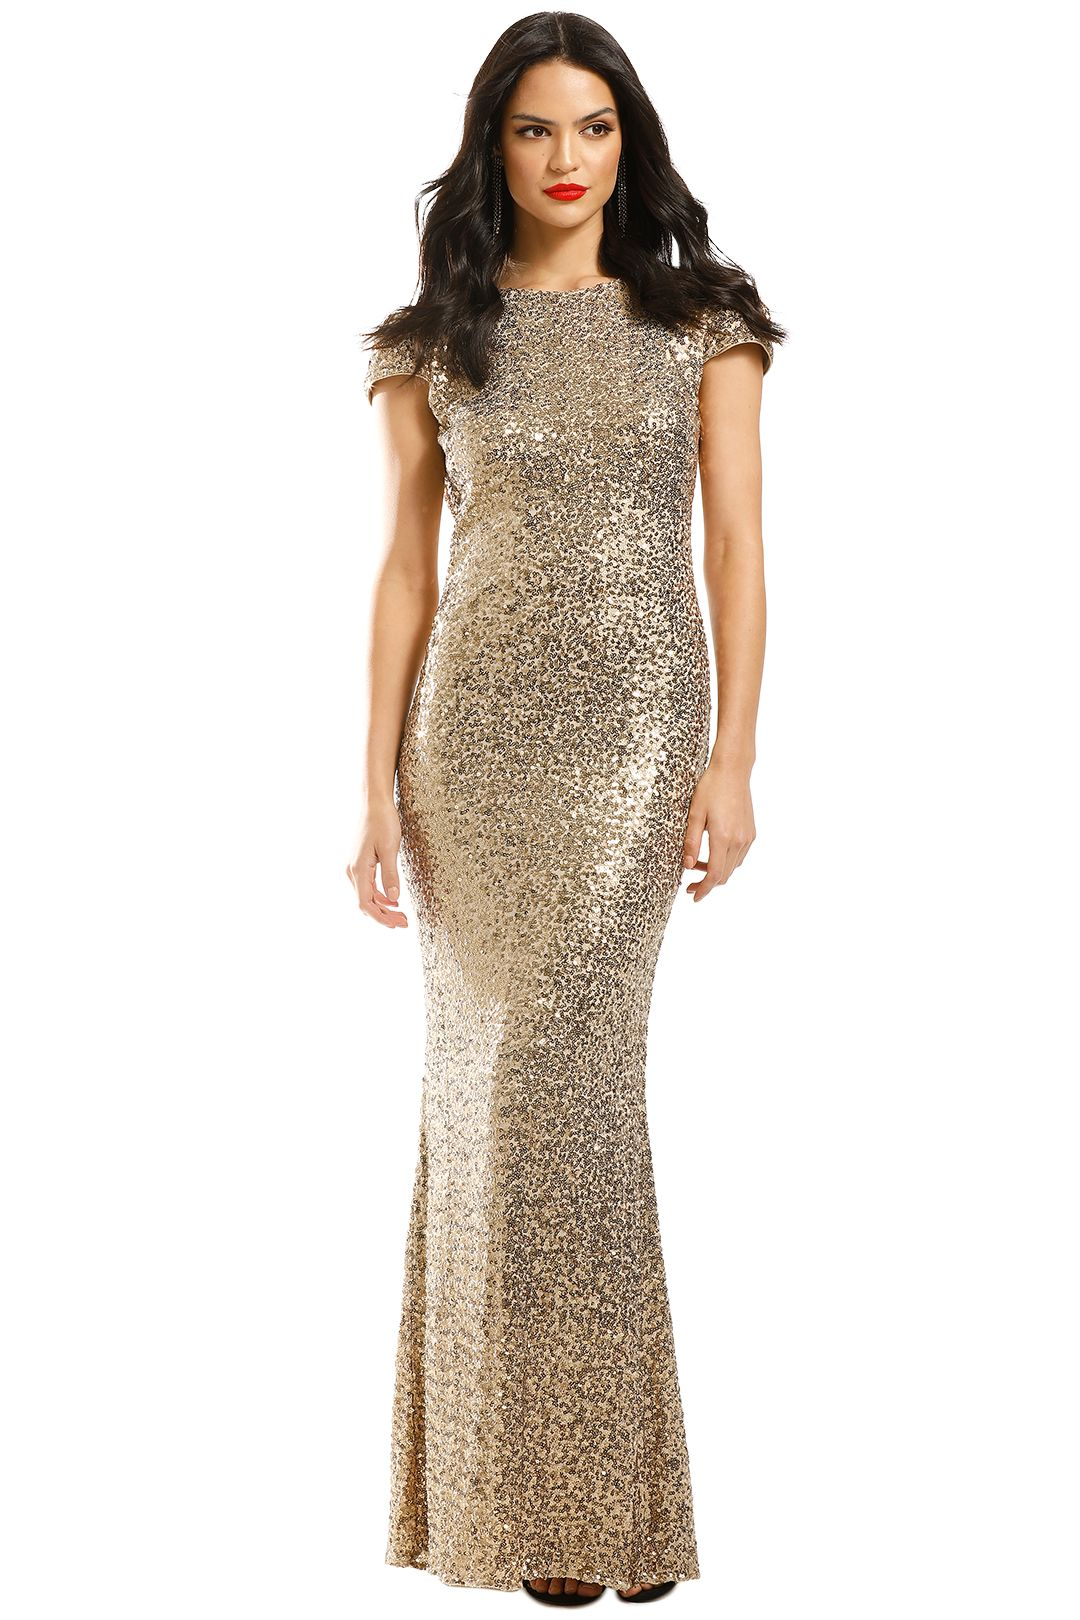 Badgley-Mischka-Gold-Sequin-Cowl-Back-Front